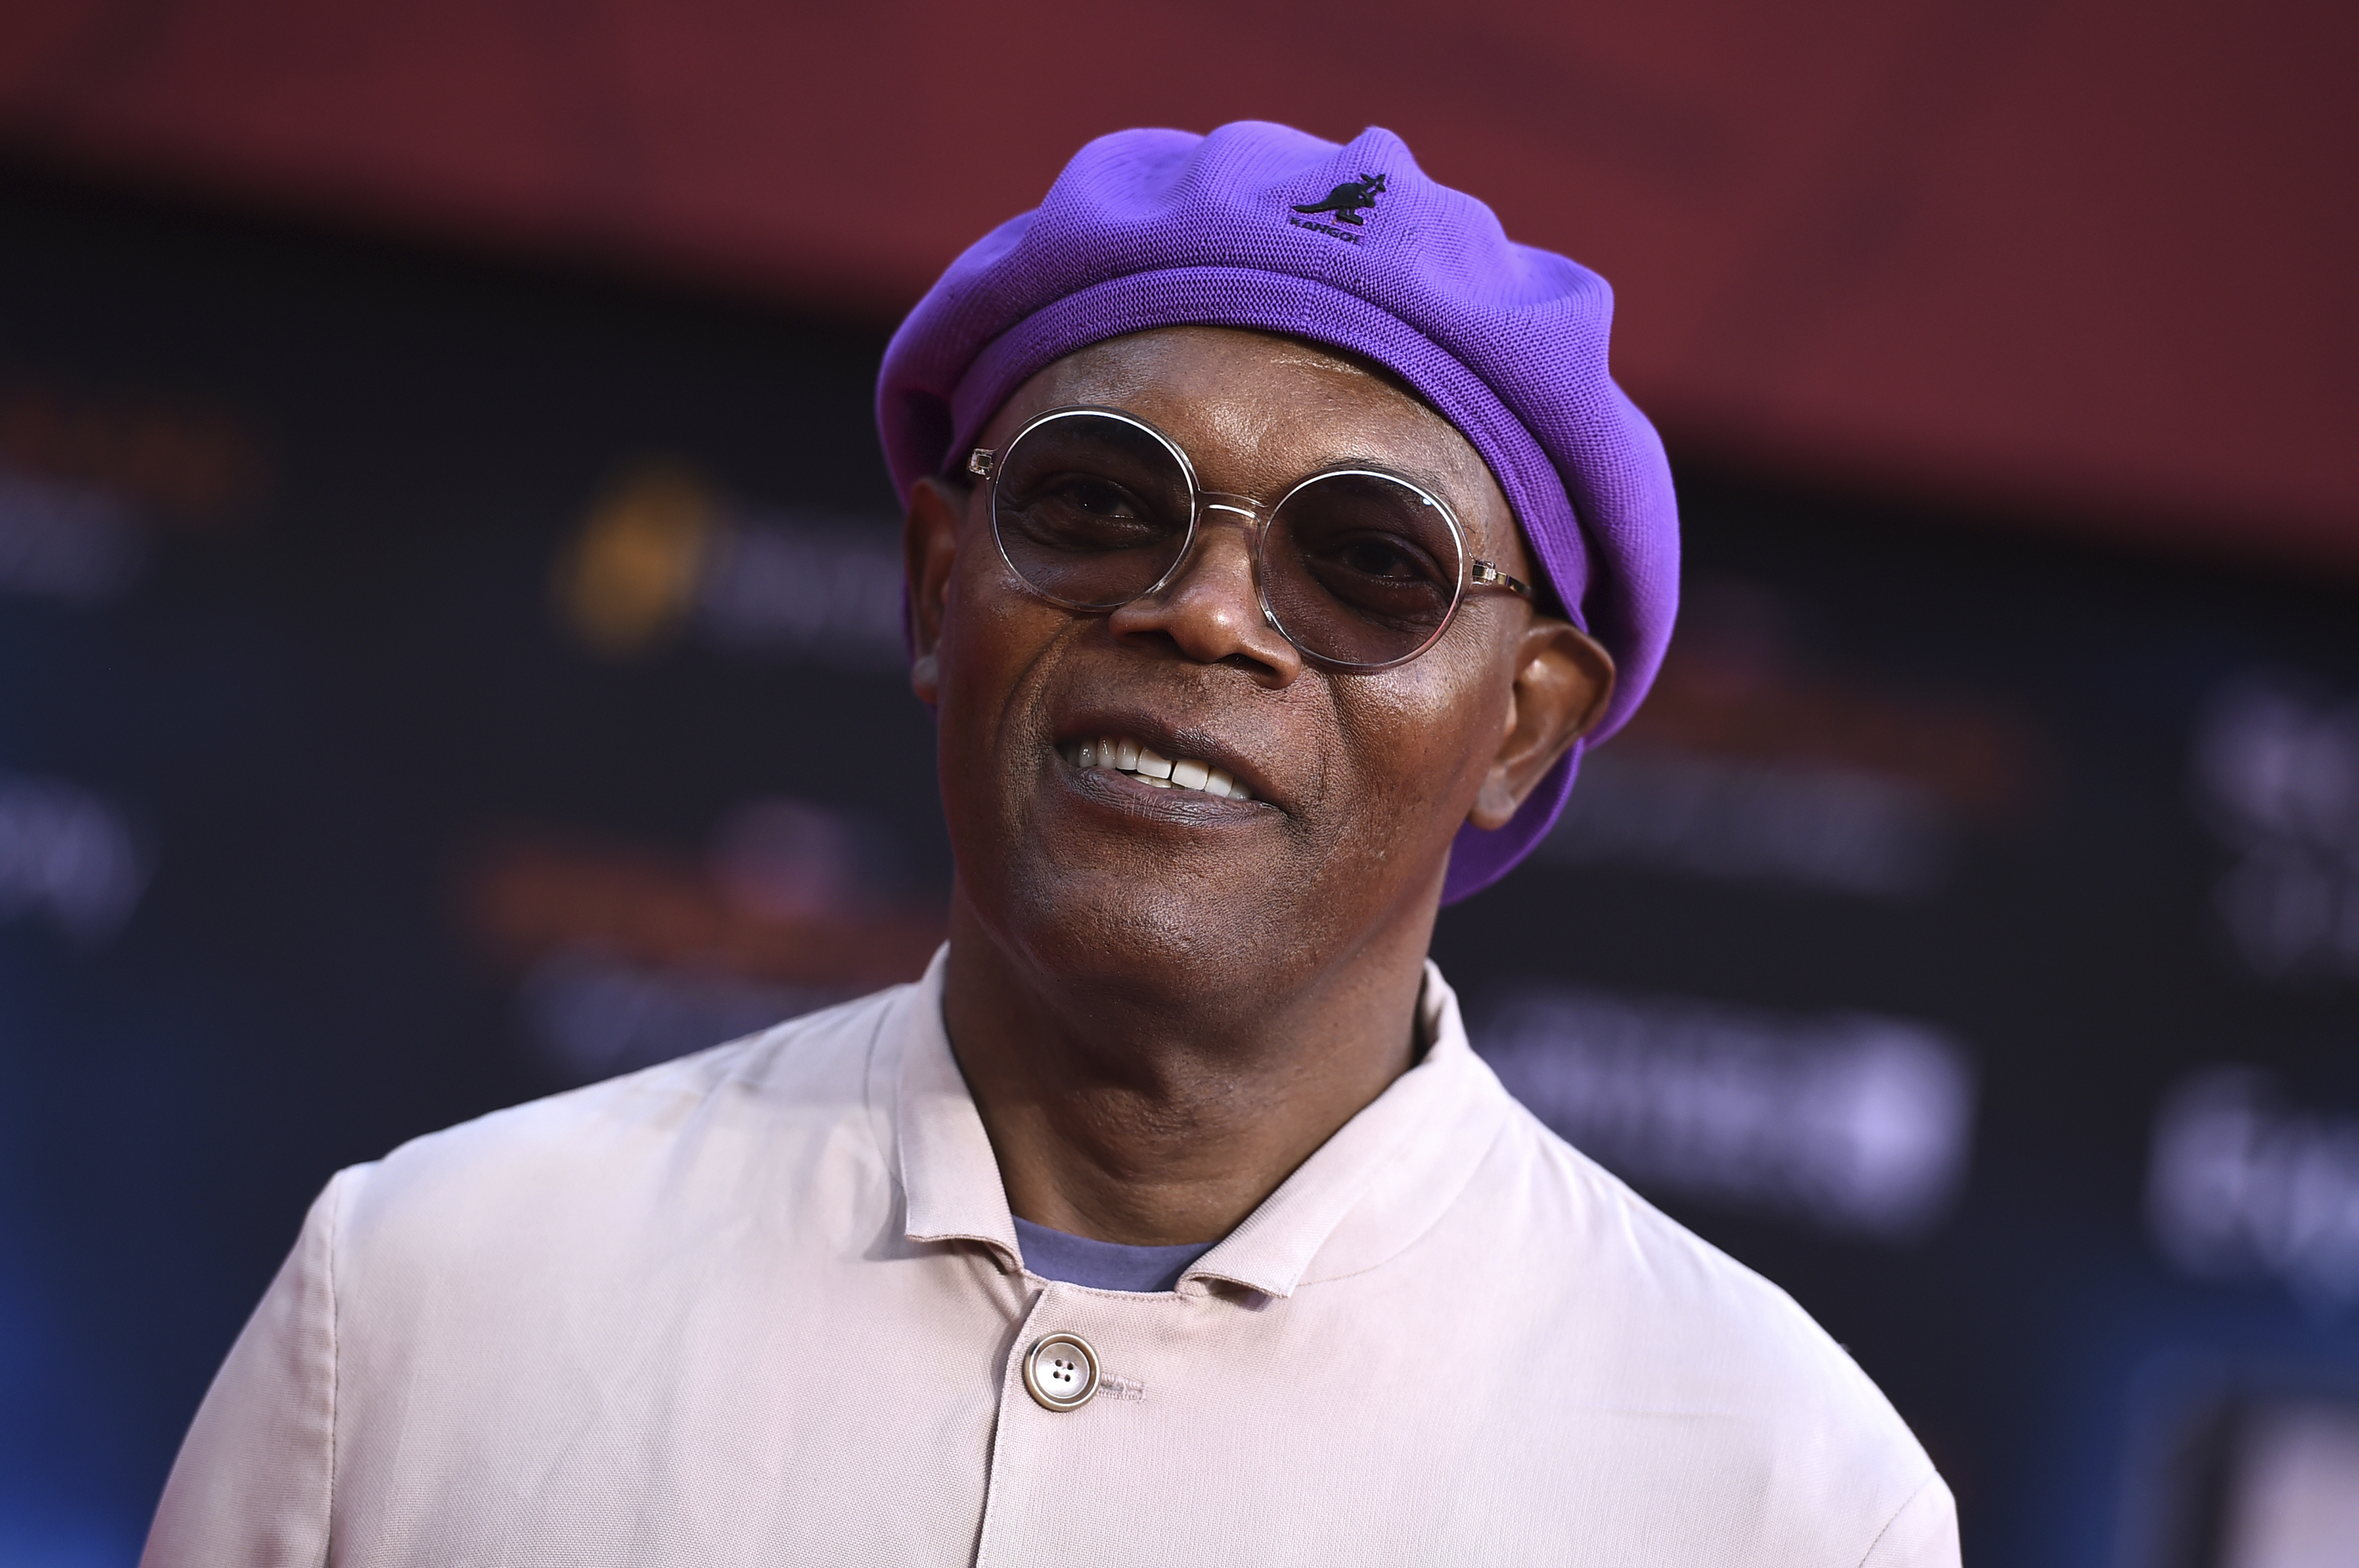 """Samuel L. Jackson arrives at the world premiere of """"Spider-Man: Far From Home"""" on Wednesday, June 26, 2019, at the TCL Chinese Theatre in Los Angeles. (Photo by Jordan Strauss/Invision/AP)"""